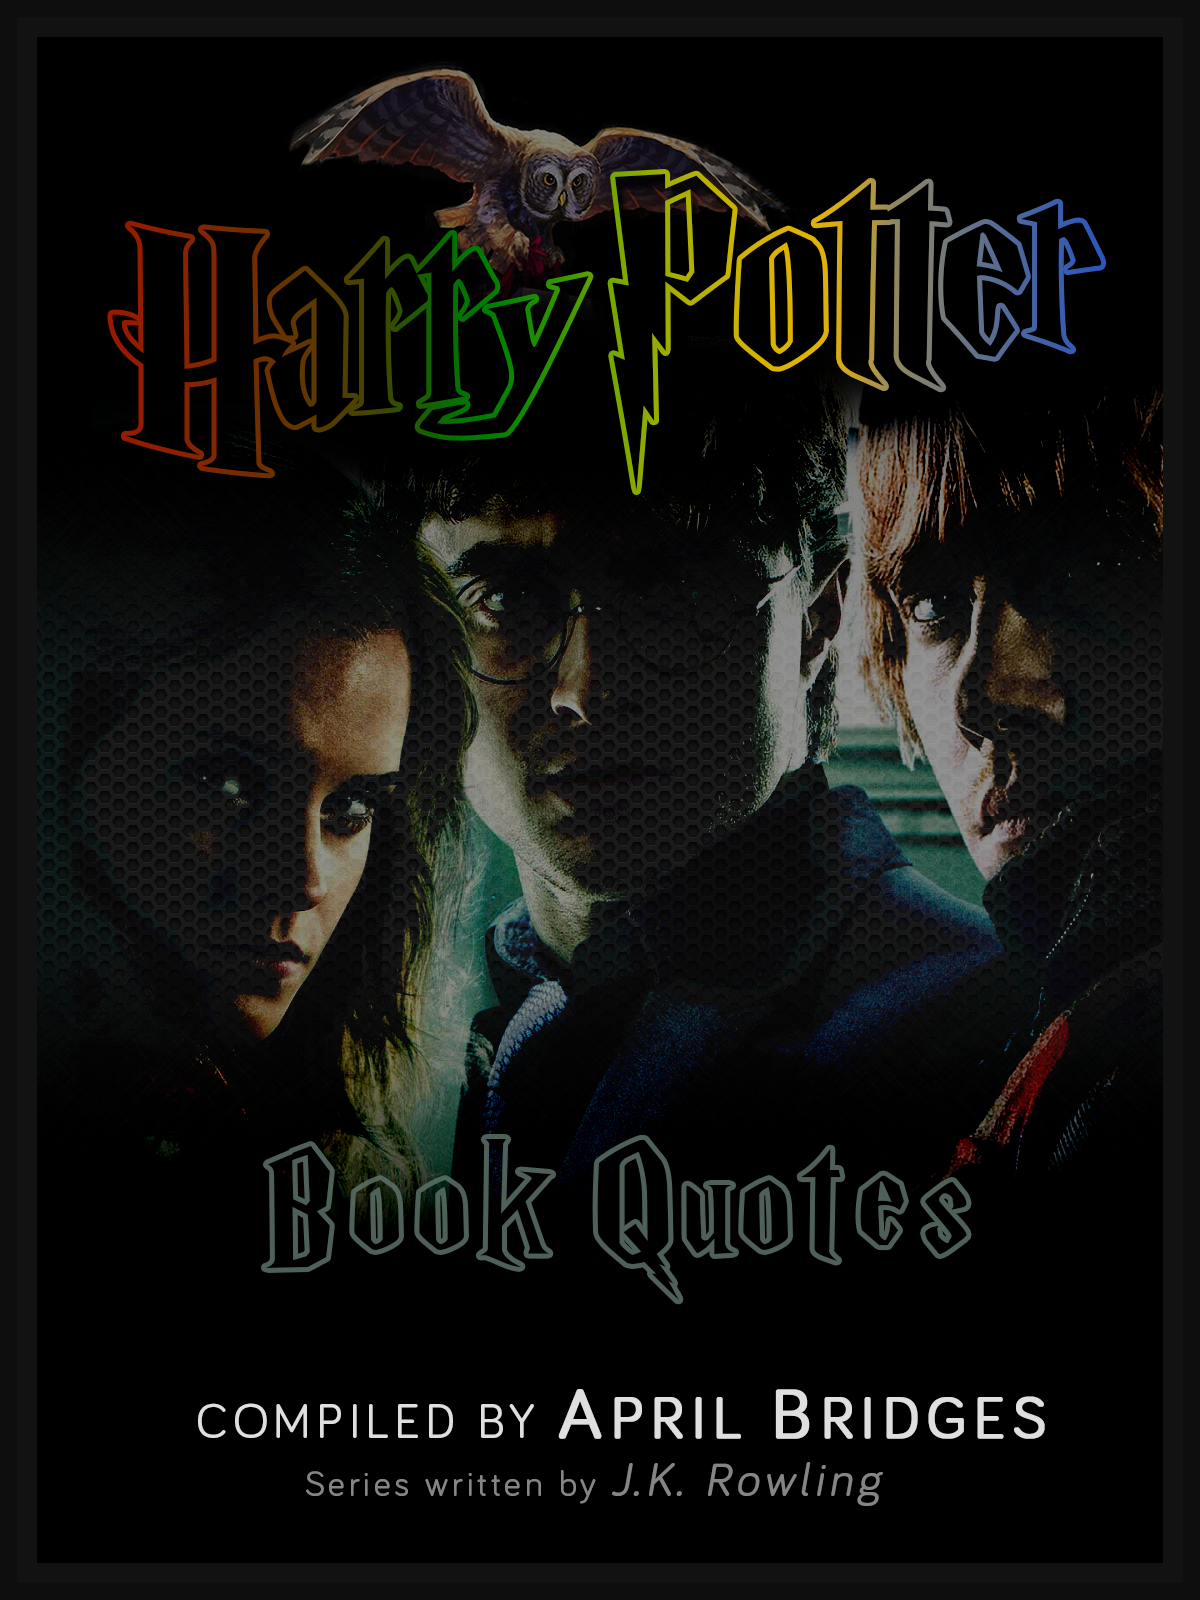 Fashion Book Cover Quote : Book cover harry potter quotes by babygurl on